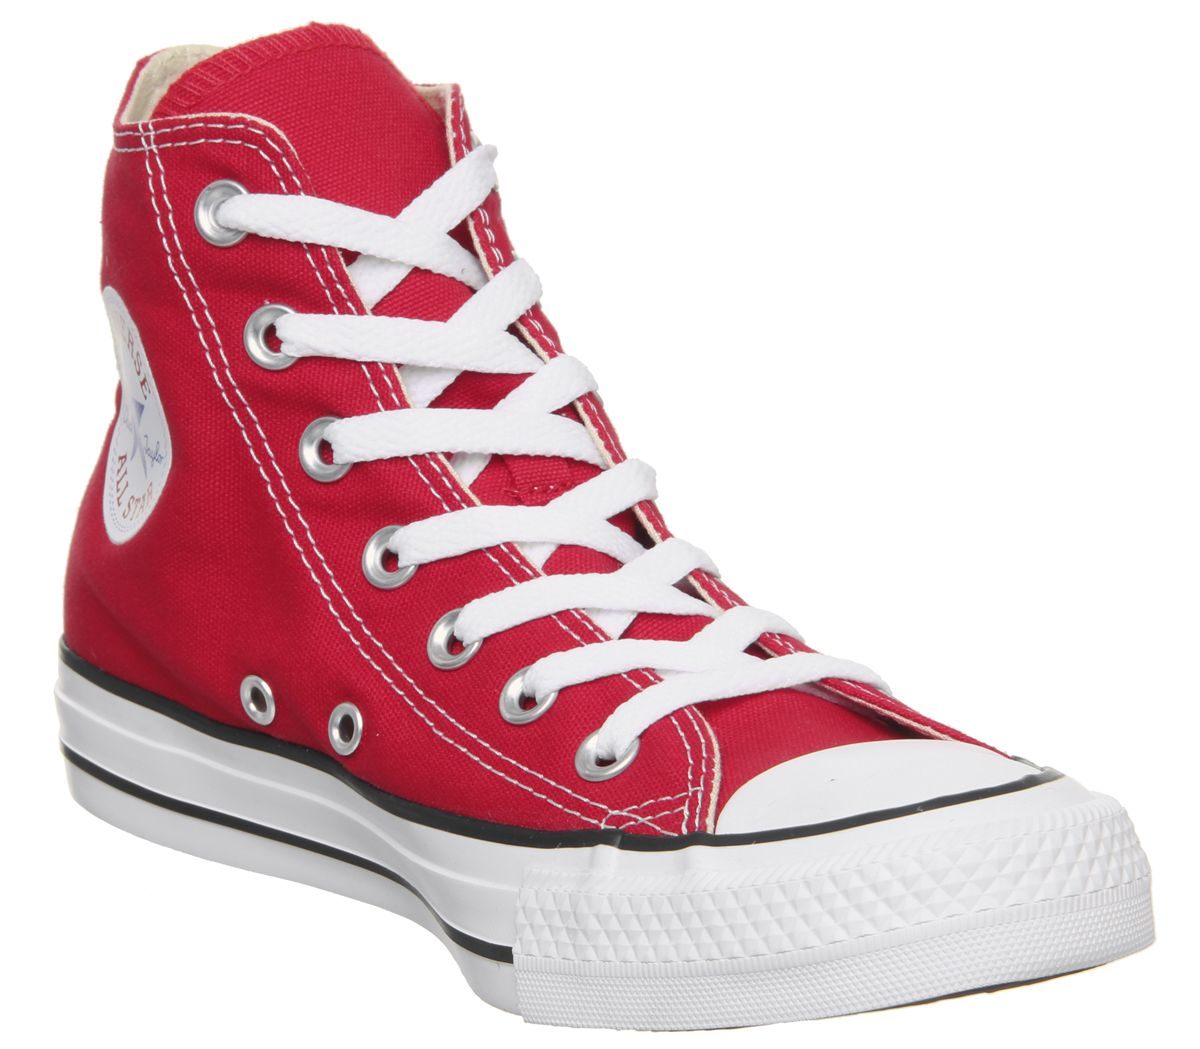 4302e816d483 Converse All Star Hi Red Canvas - Unisex Sports